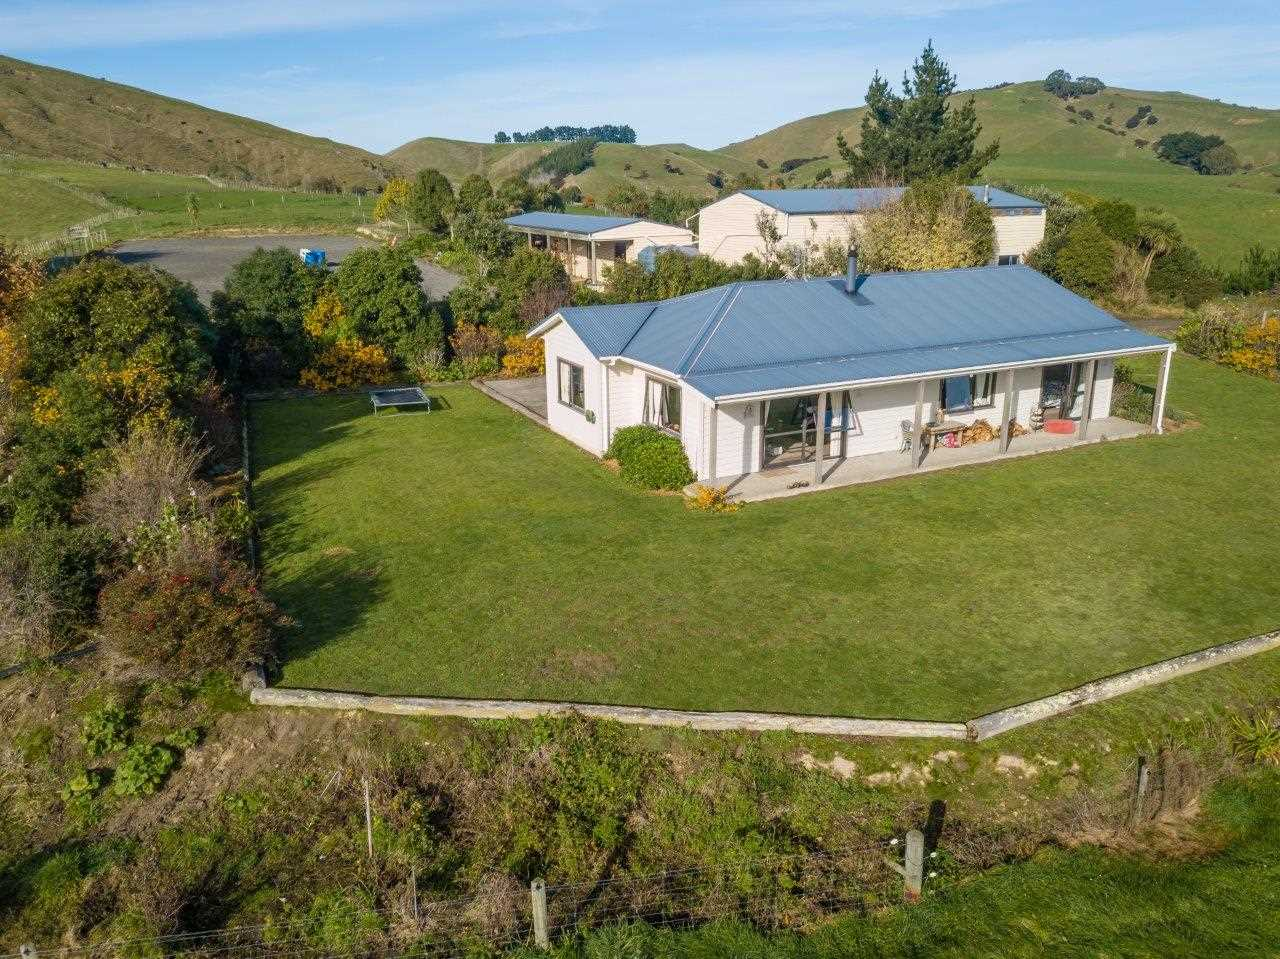 Lifestyle, Horses and Views! - BEO $595,000